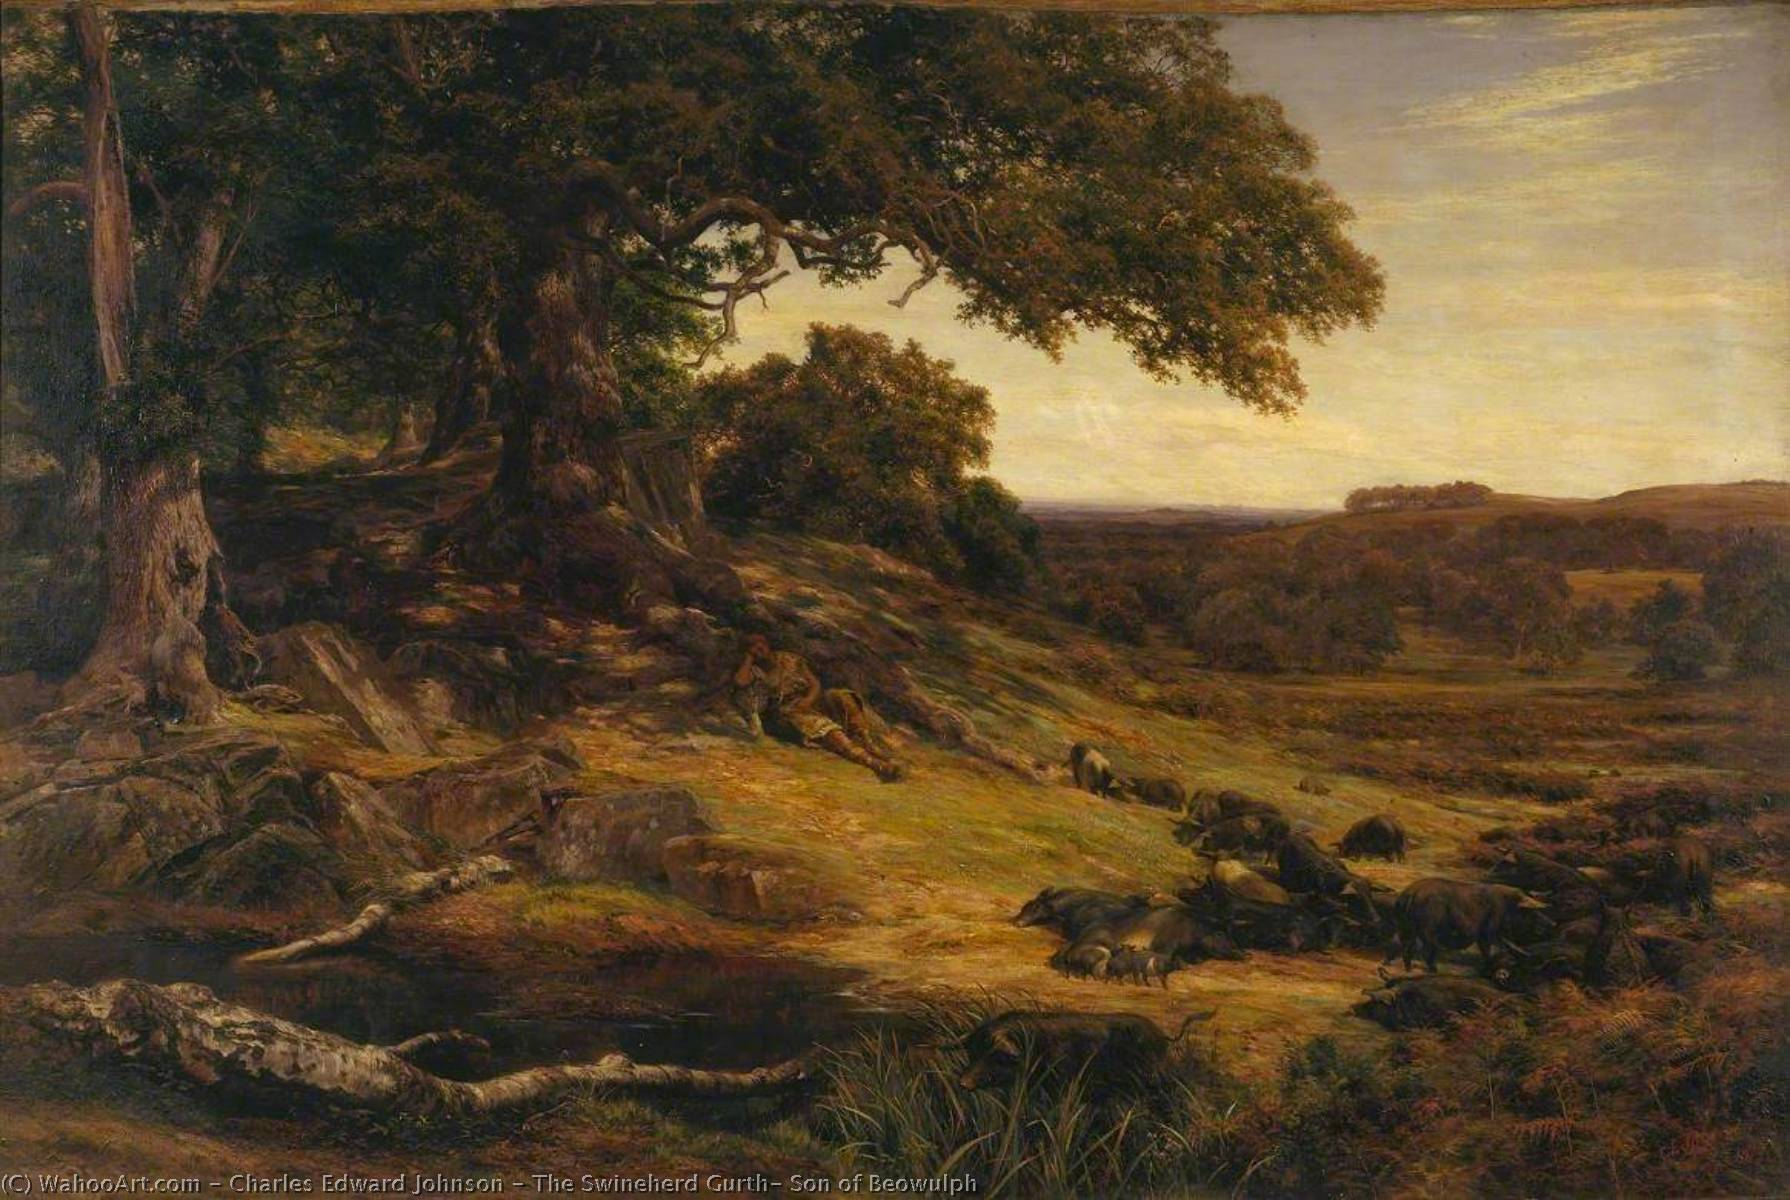 The Swineherd Gurth, Son of Beowulph, 1879 by Charles Edward Johnson | Oil Painting | WahooArt.com